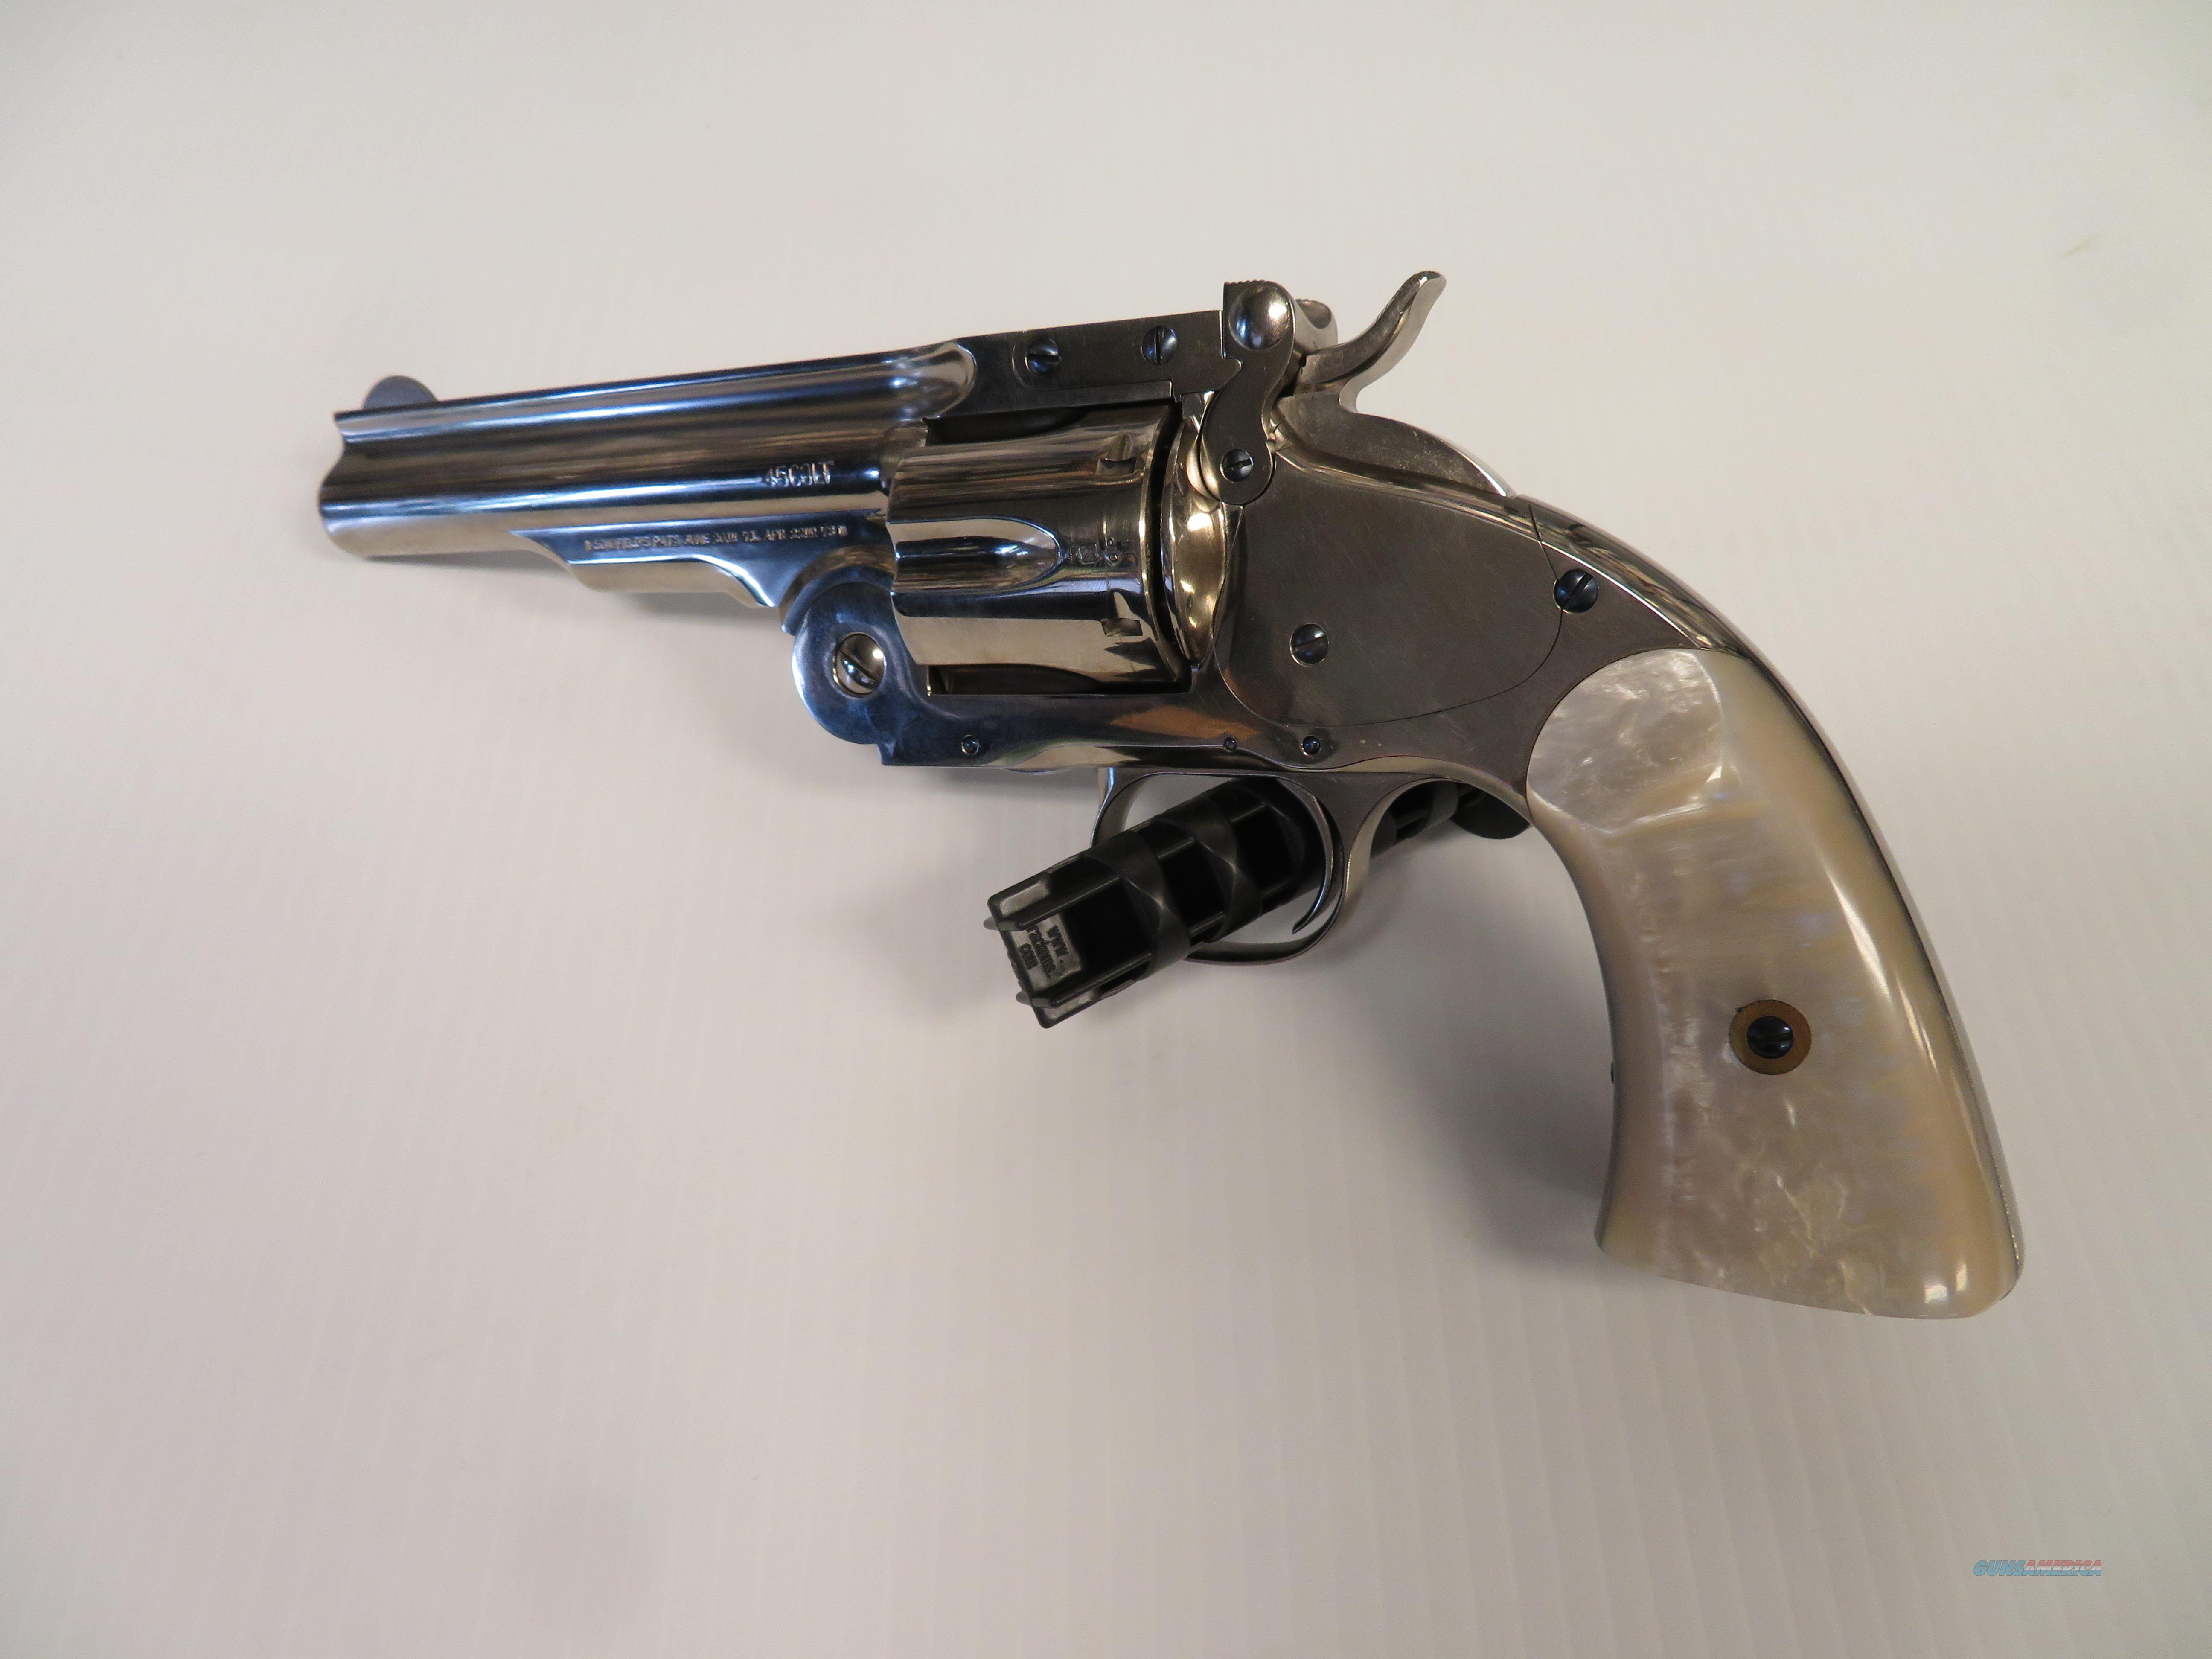 Schofield Buy Sell Trade >> Uberti Stoger Schofield .45 Long Colt 6-Shot To... for sale